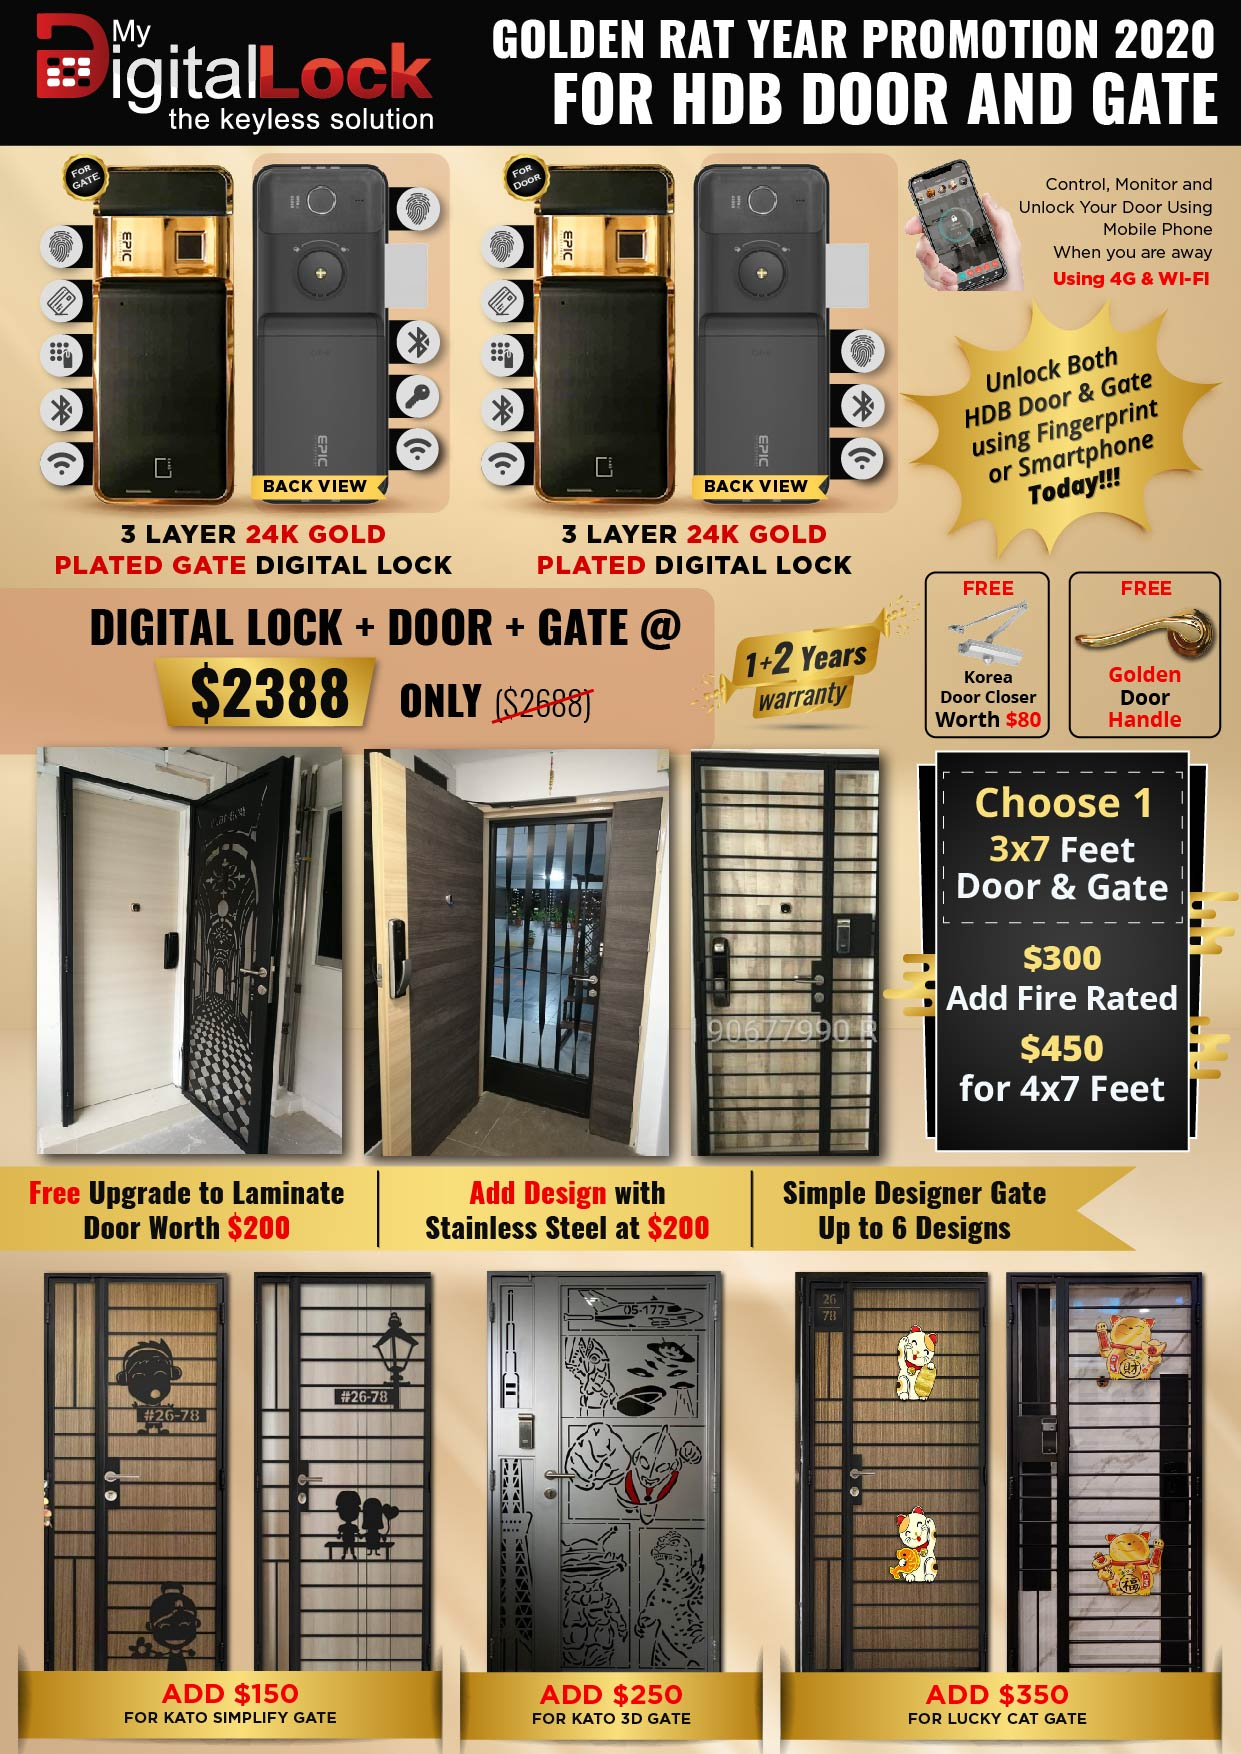 Golden Rat Year HDB Door and Gate Promotion with 24K Gold Plated Digtal Lock